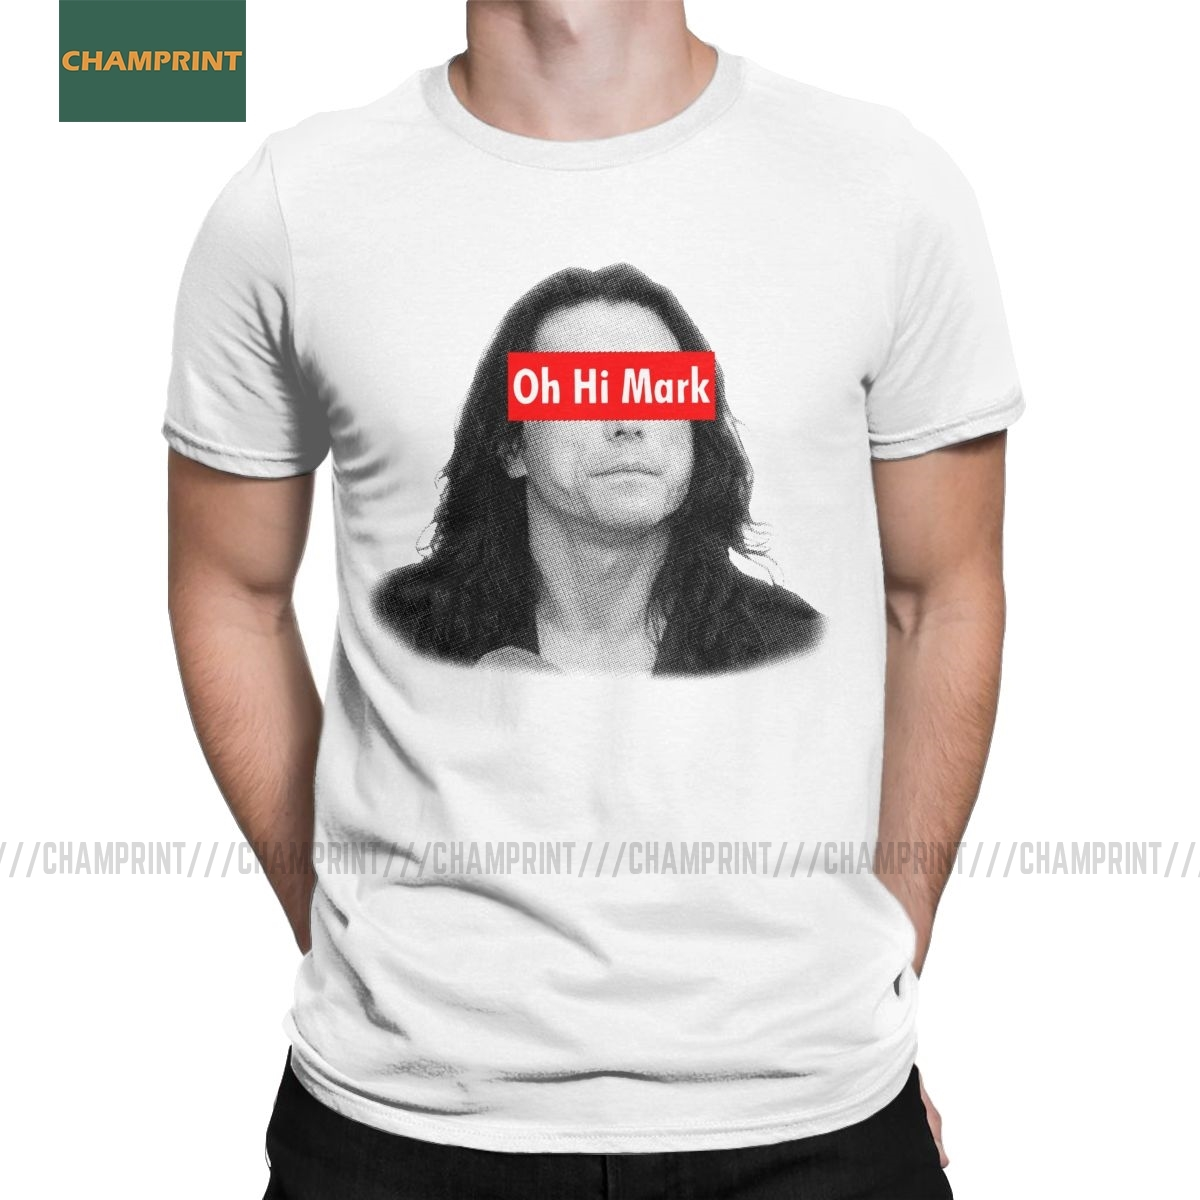 Oh Hi Mark The Disaster Artist T-Shirts Men Cotton T Shirts The Room Tommy Wiseau Hi Mark Short Sleeve Tee Shirt Printed Tops